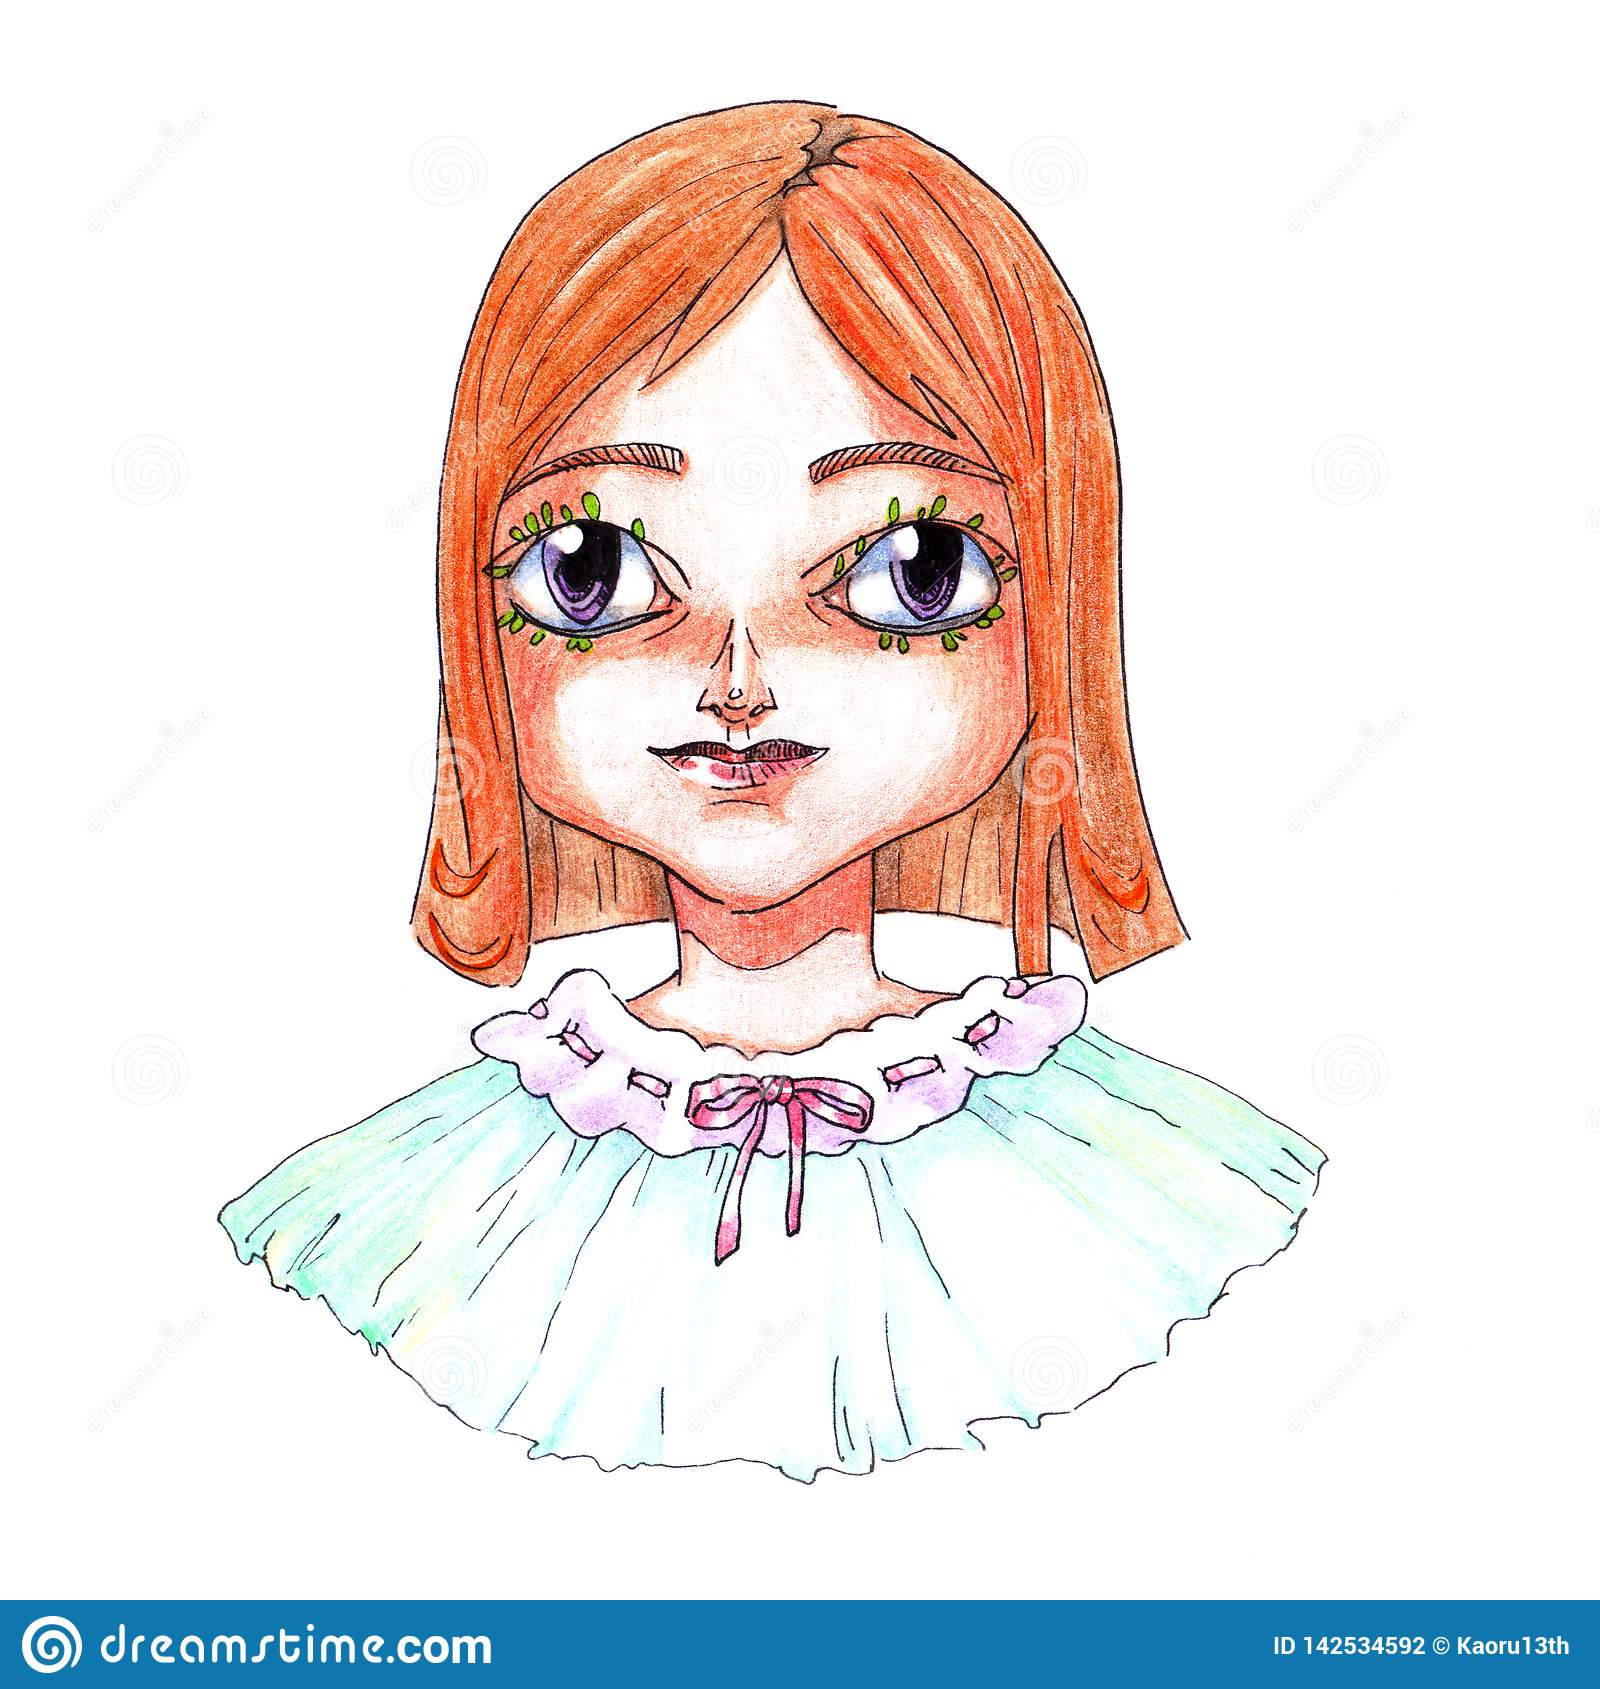 Portrait Of A Cartoon Redhead Girl Drawn In A Color Pencil With